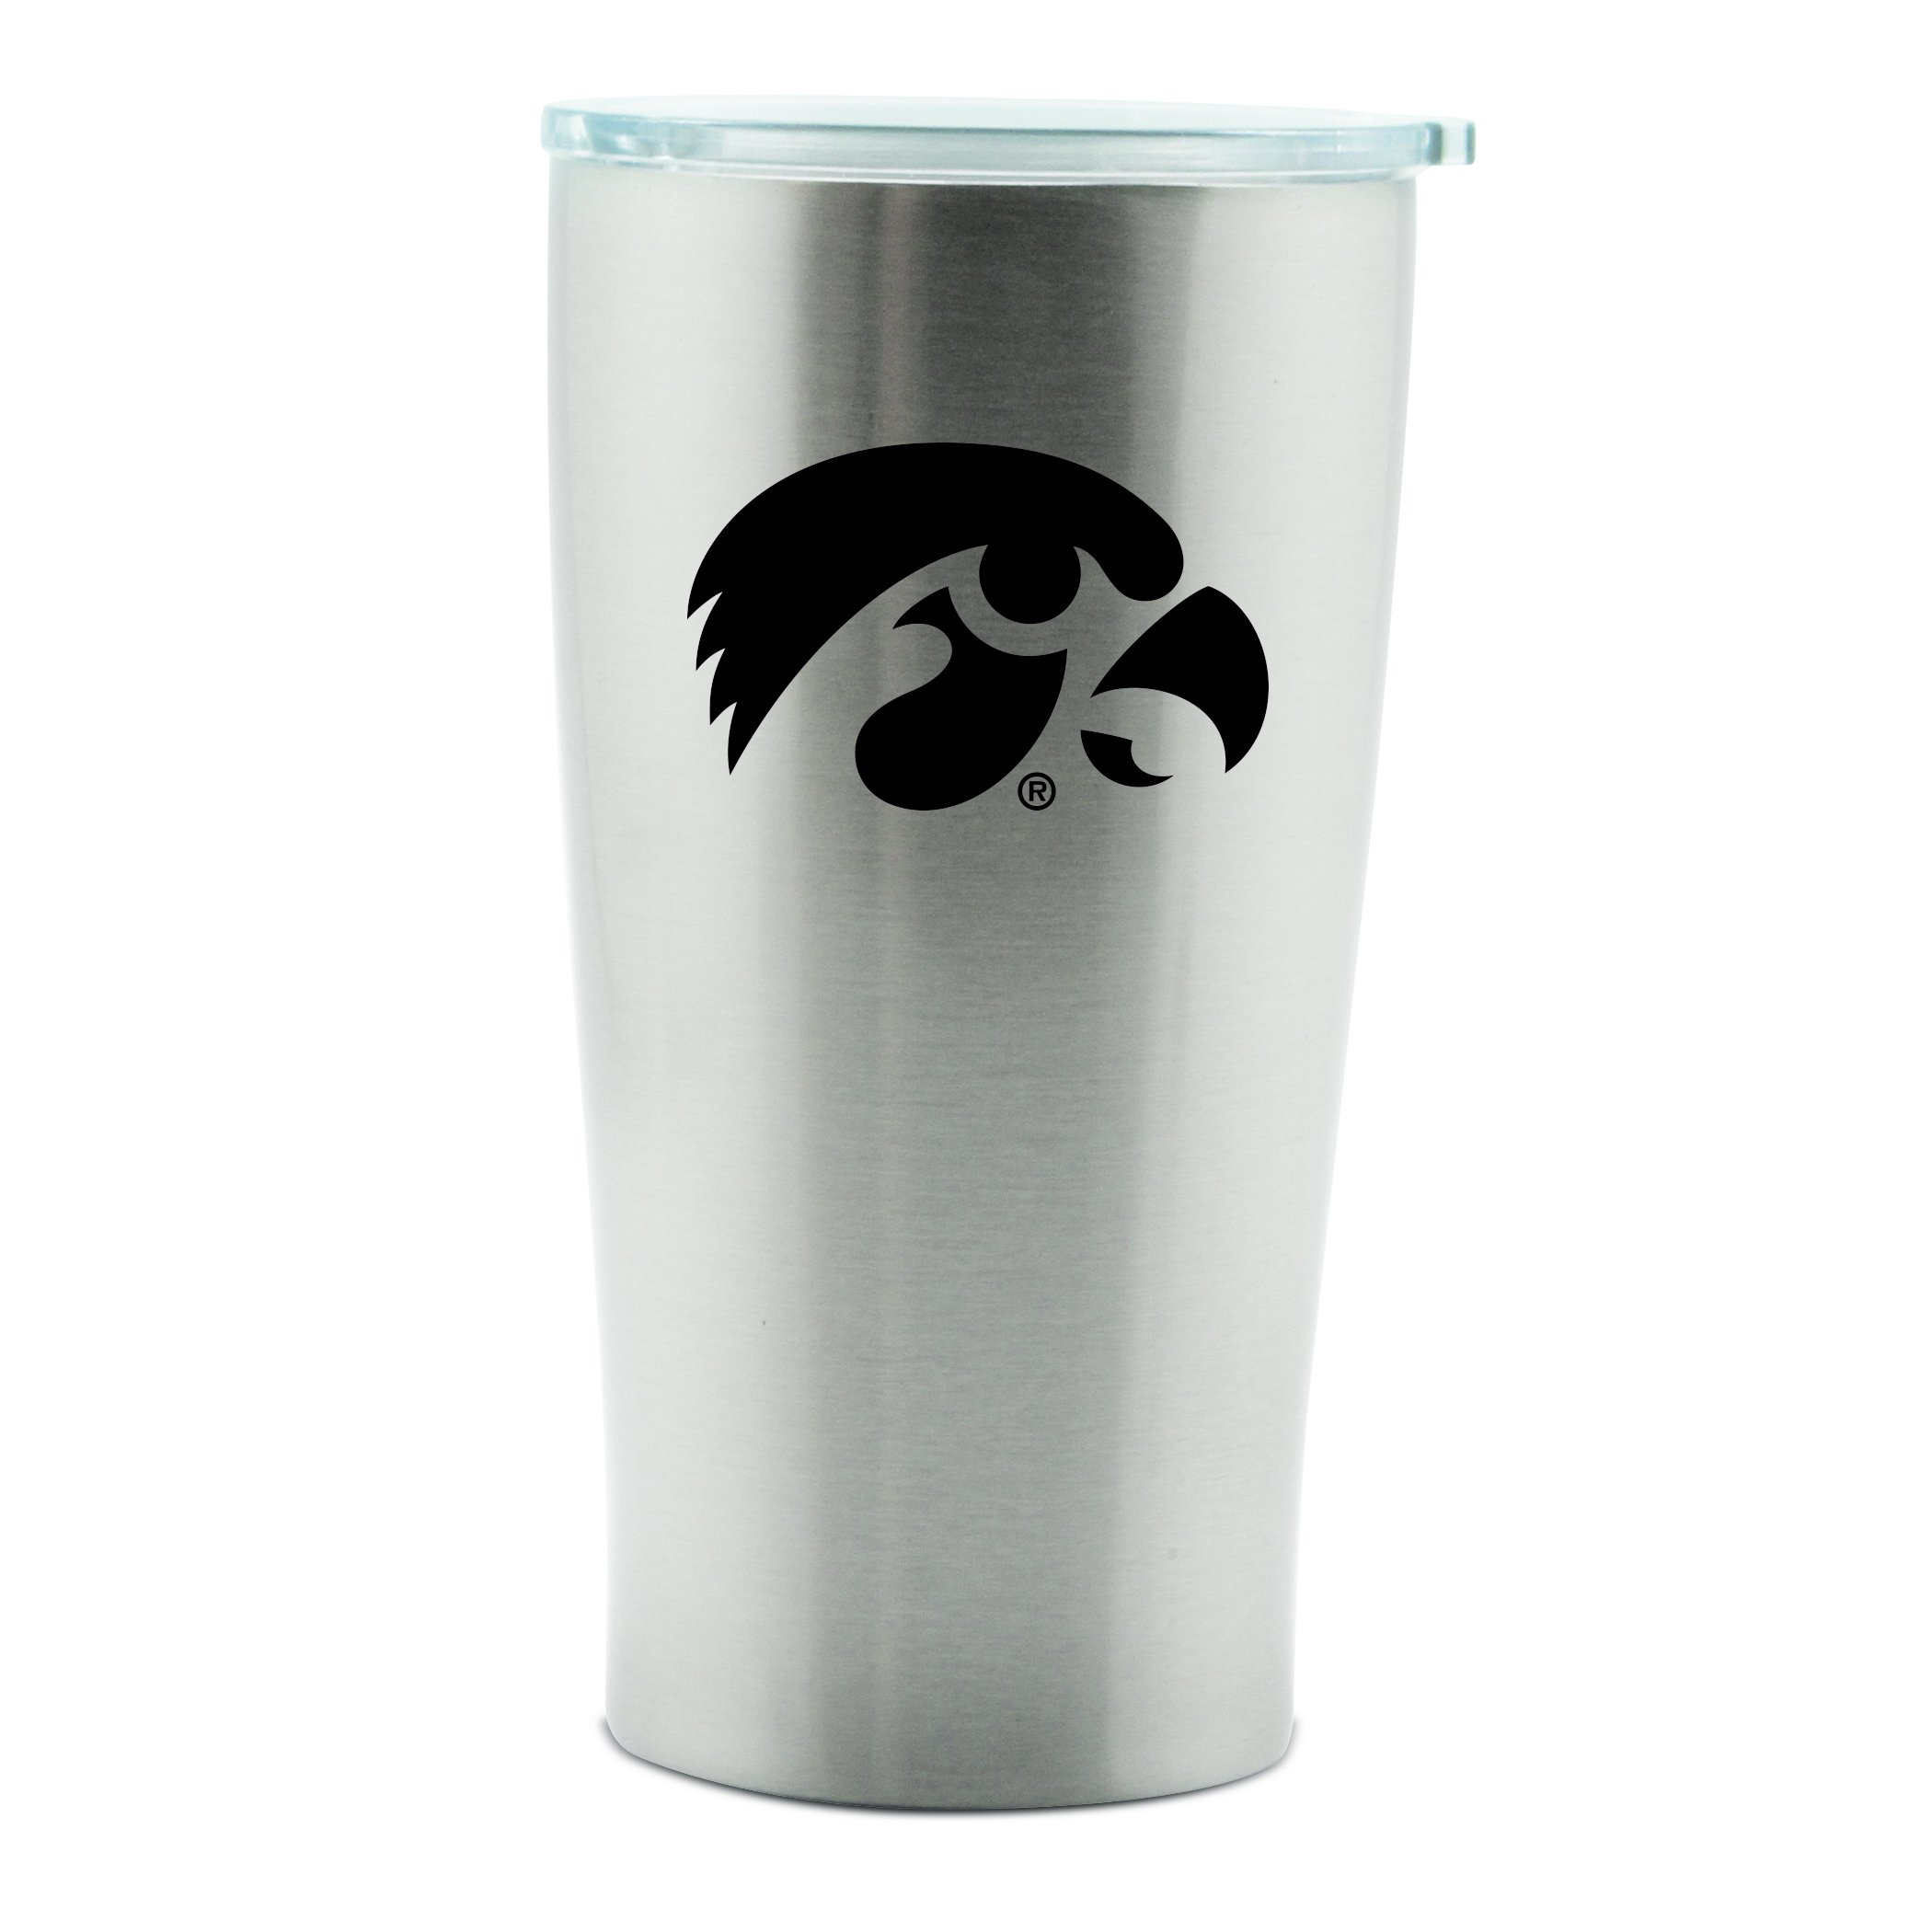 NCAA Iowa Hawkeyes 14oz Double Wall Stainless Steel Thermo Cup with Lid by Duck House